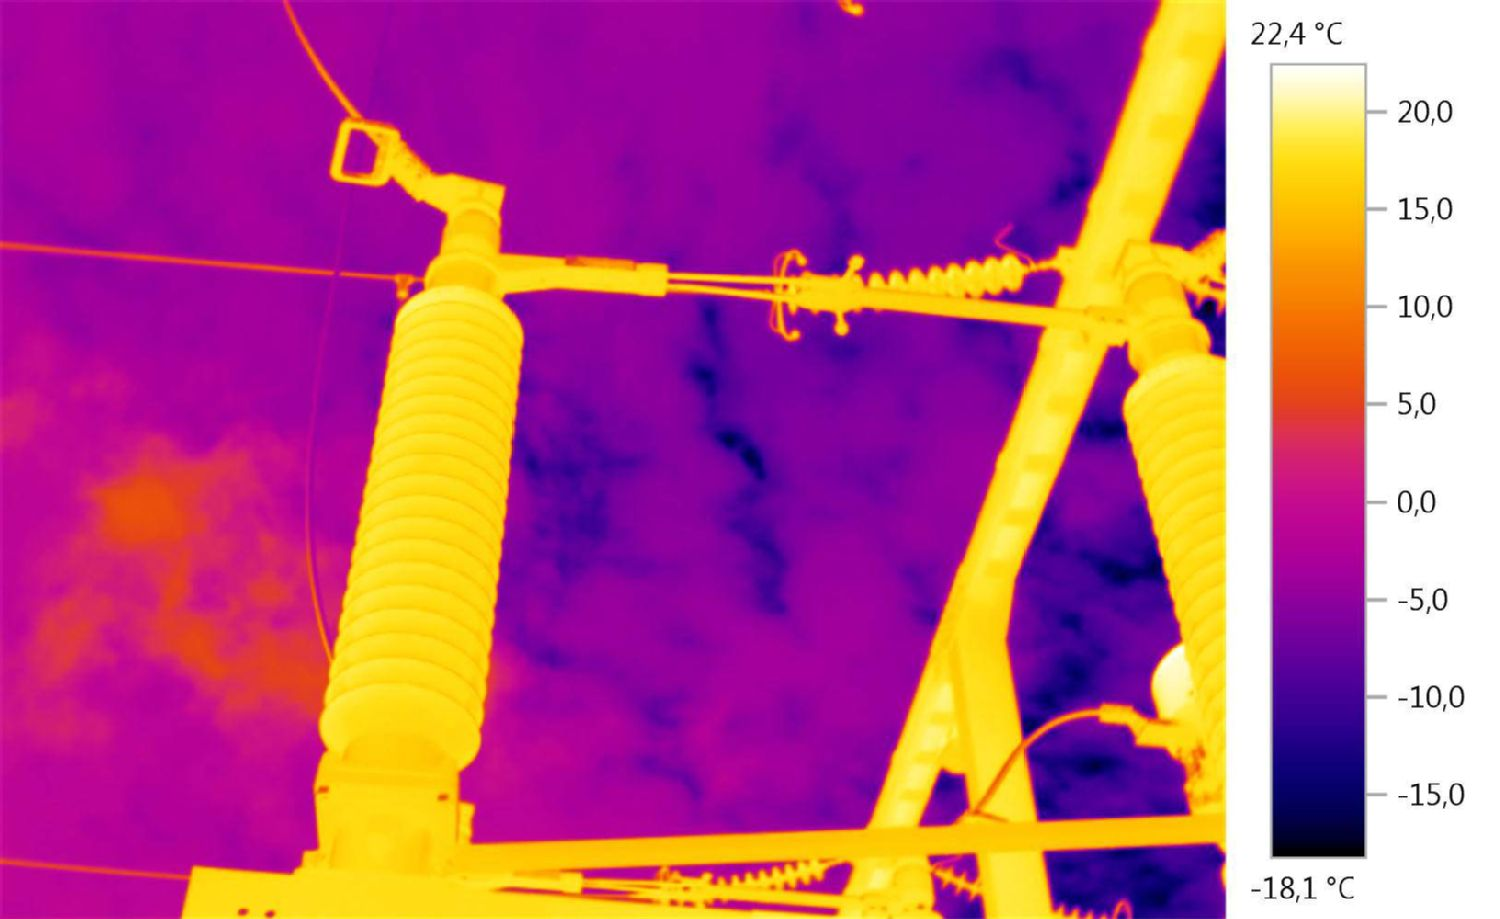 Thermal image overhead power lines